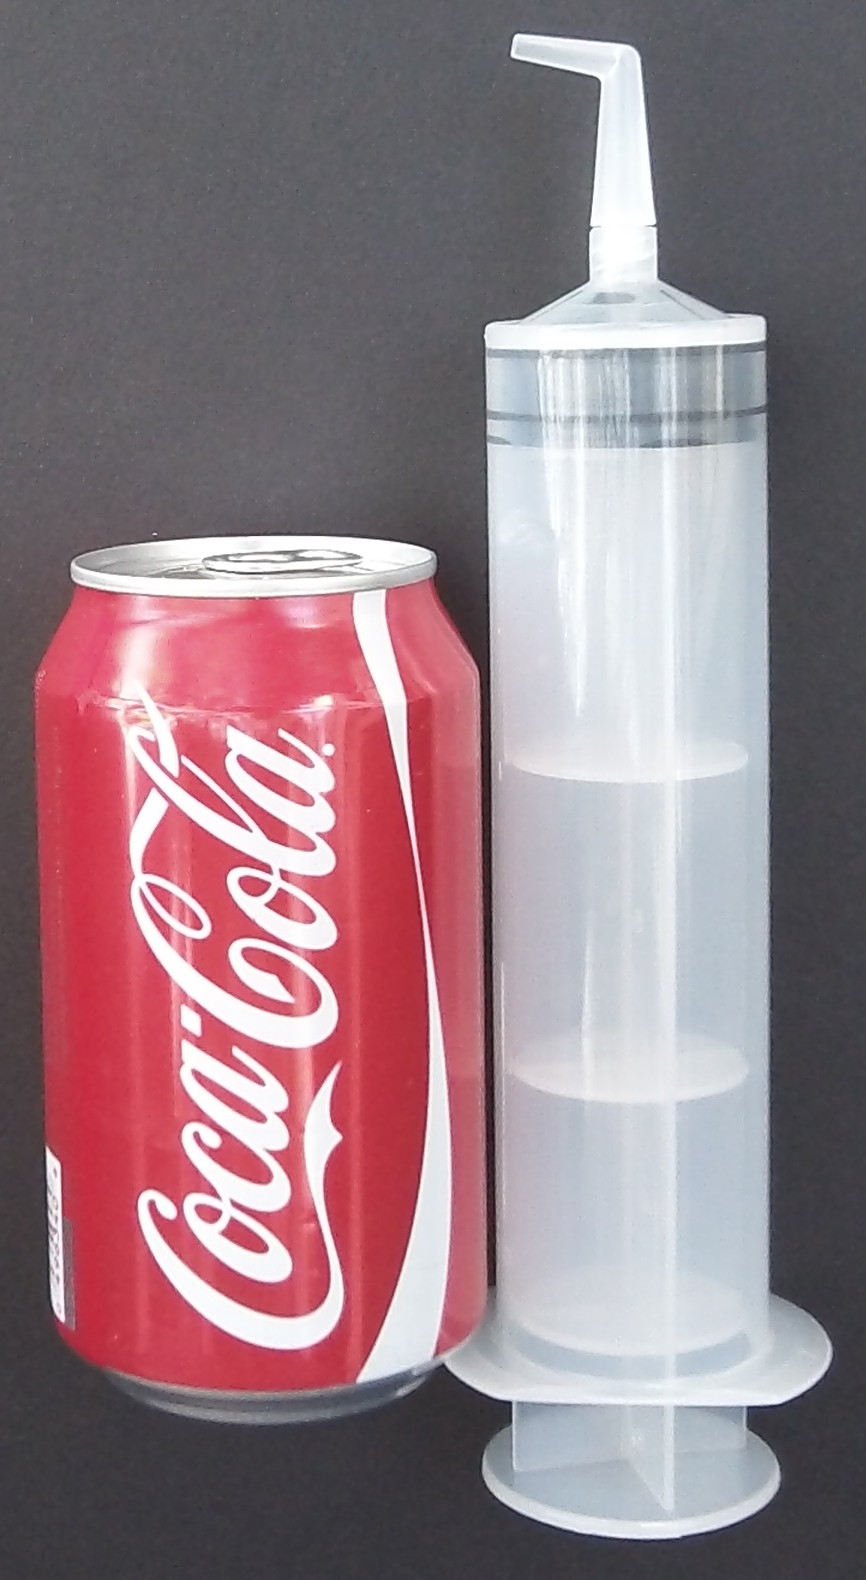 Size comparison of Ear-Clear next to 12 fl. oz. soda can.